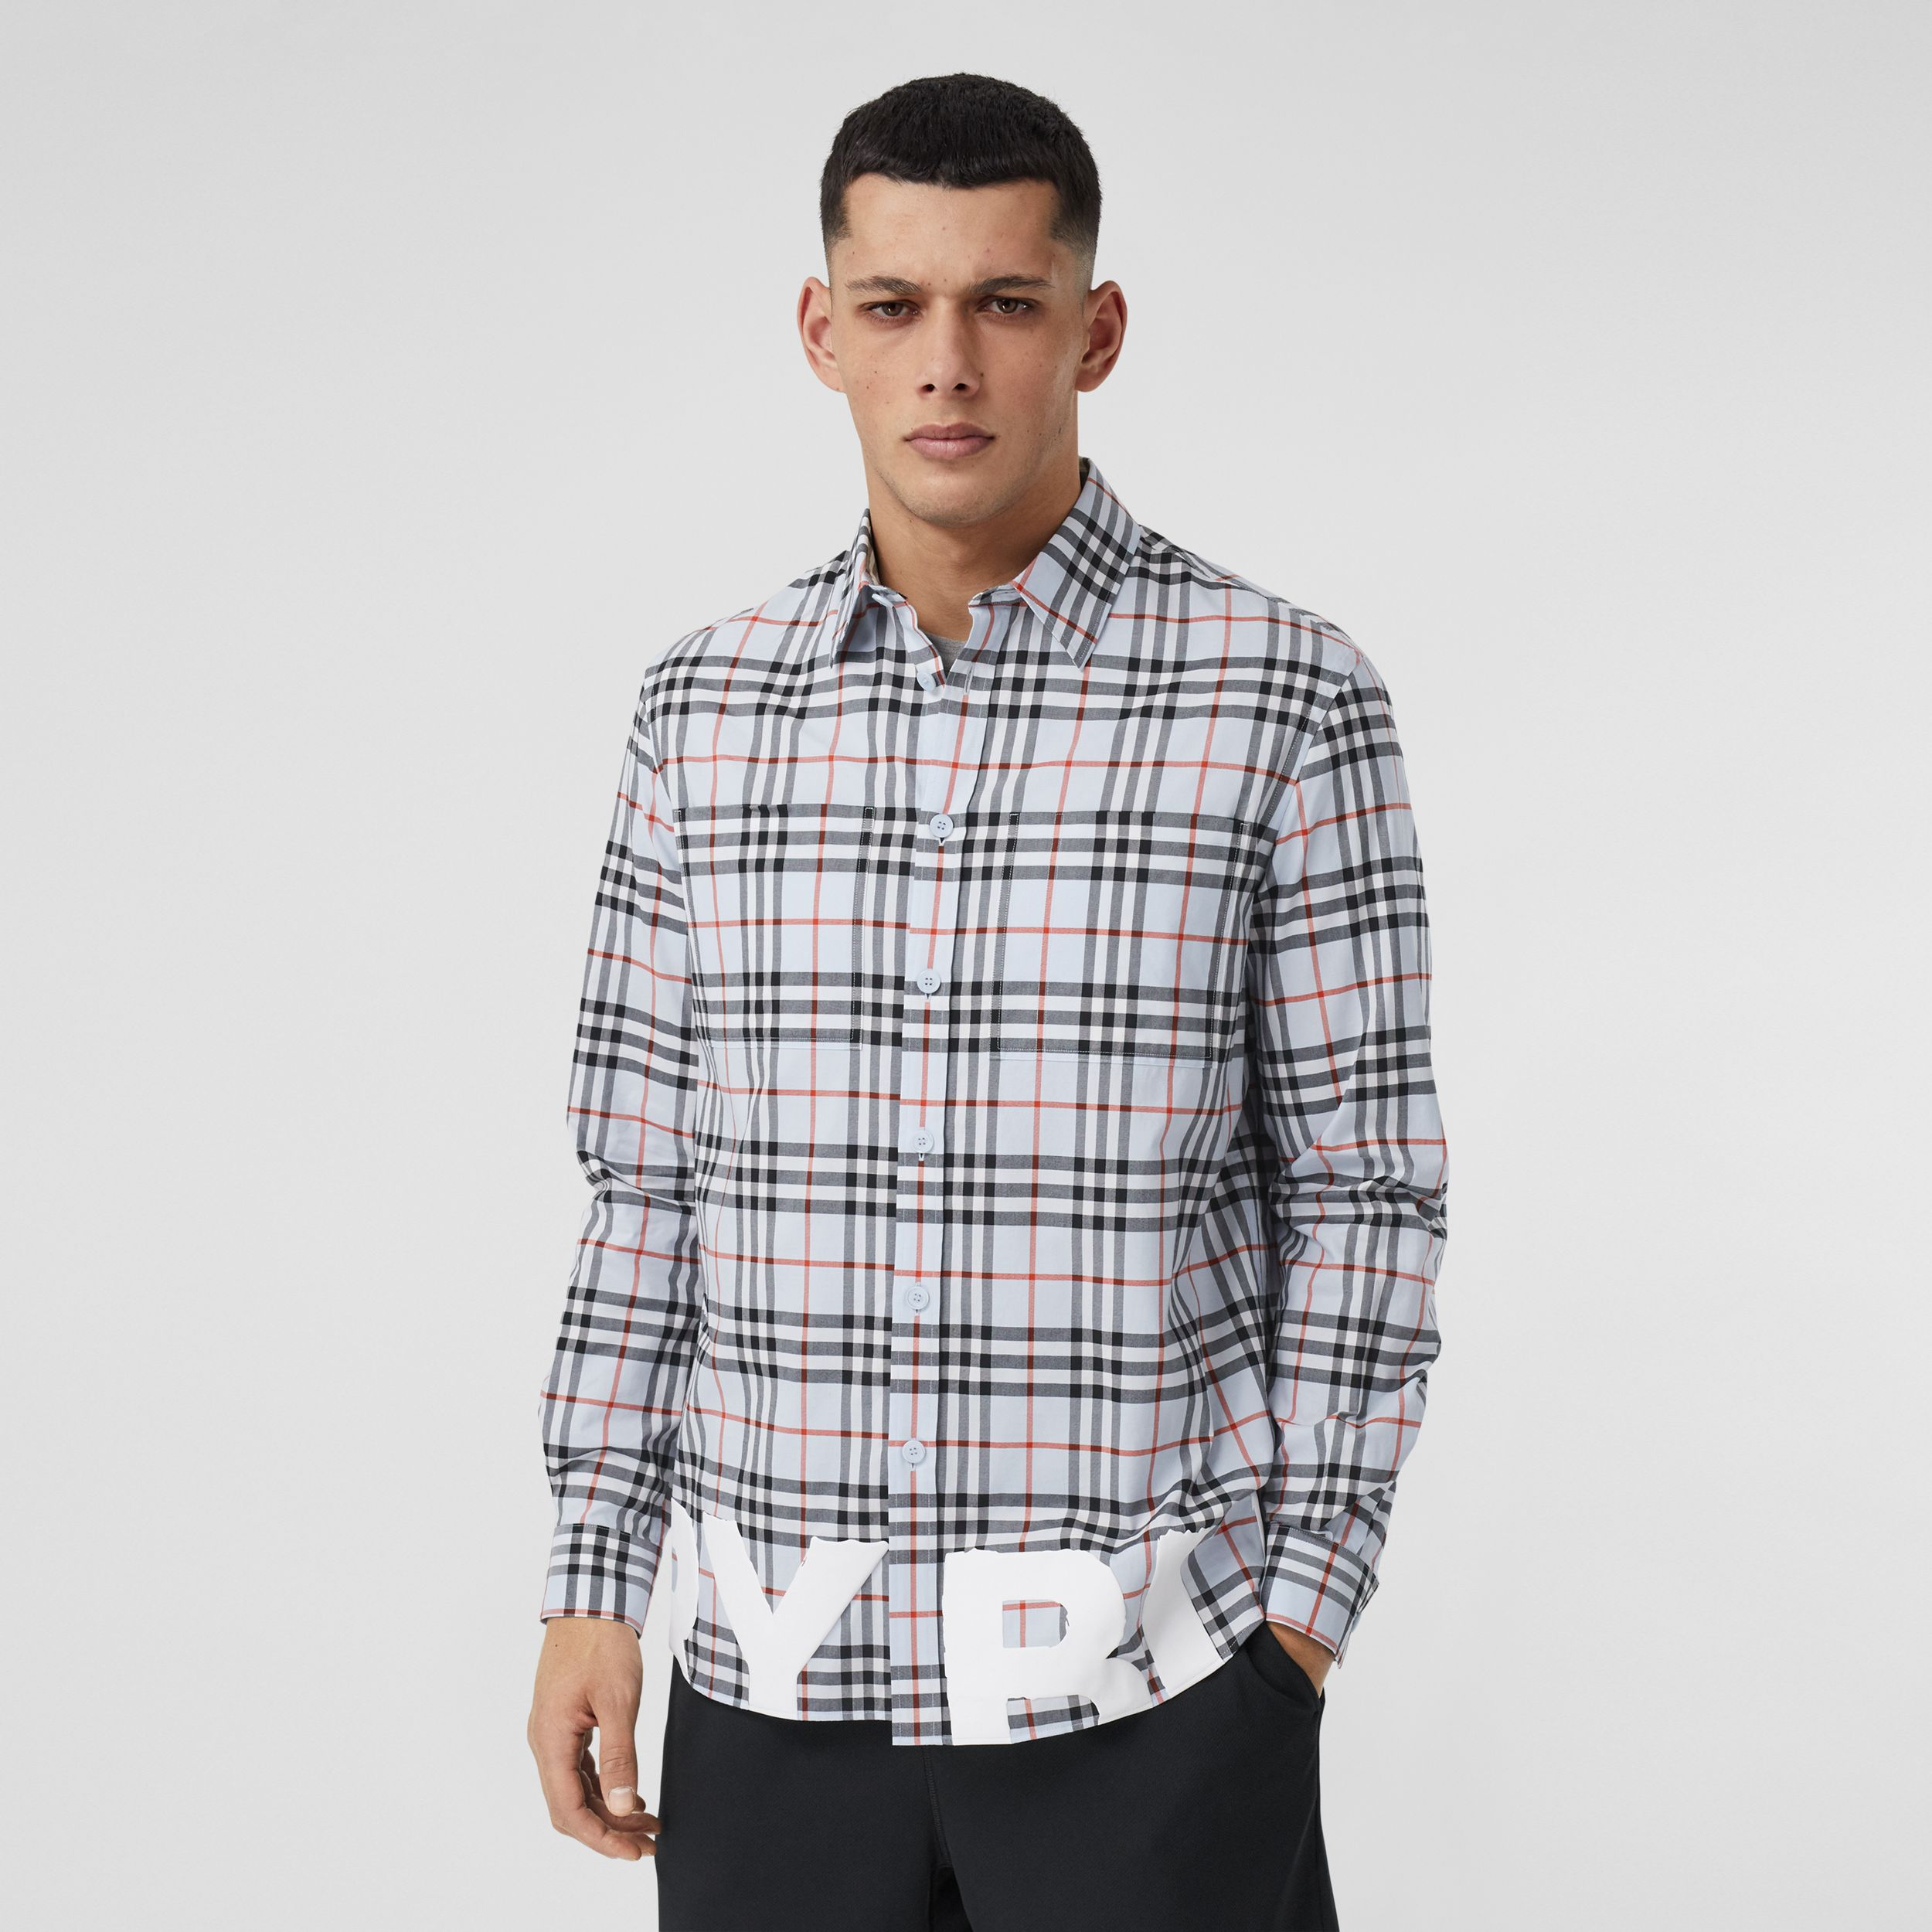 Logo Print Vintage Check Cotton Oversized Shirt – Online Exclusive in Pale Blue - Men | Burberry - 1